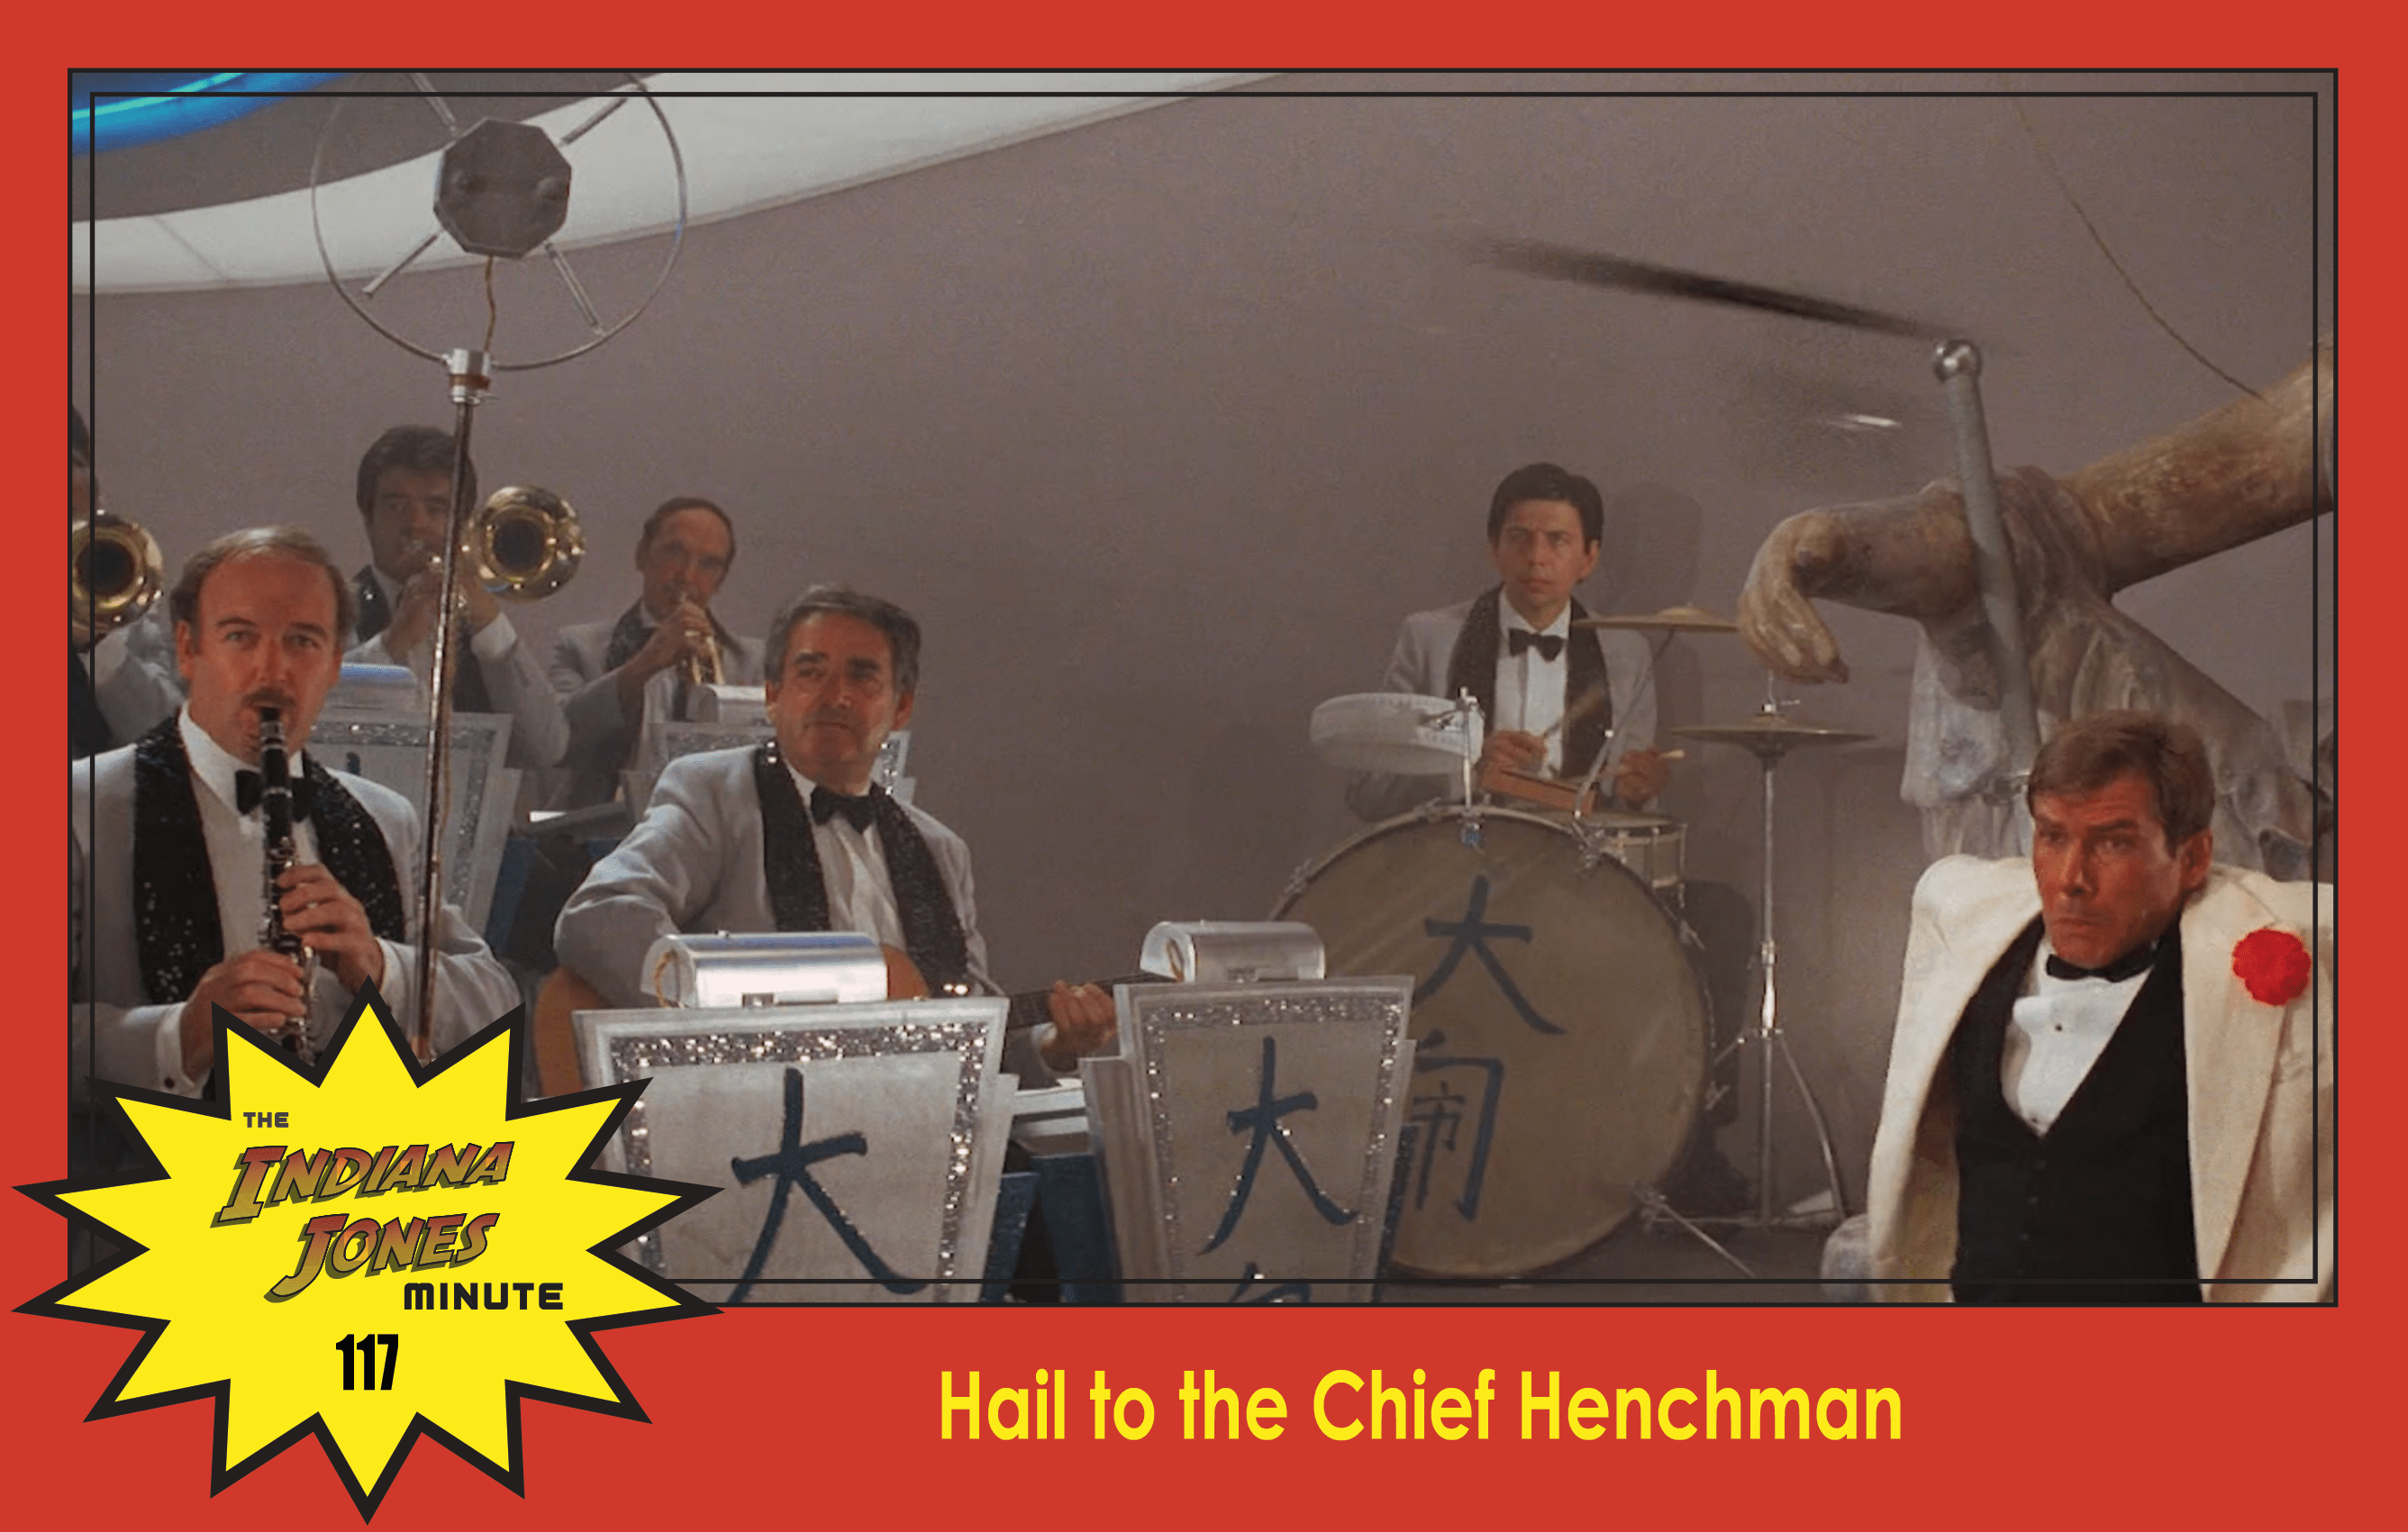 Temple of Doom Minute 117: Hail to the Chief Henchman